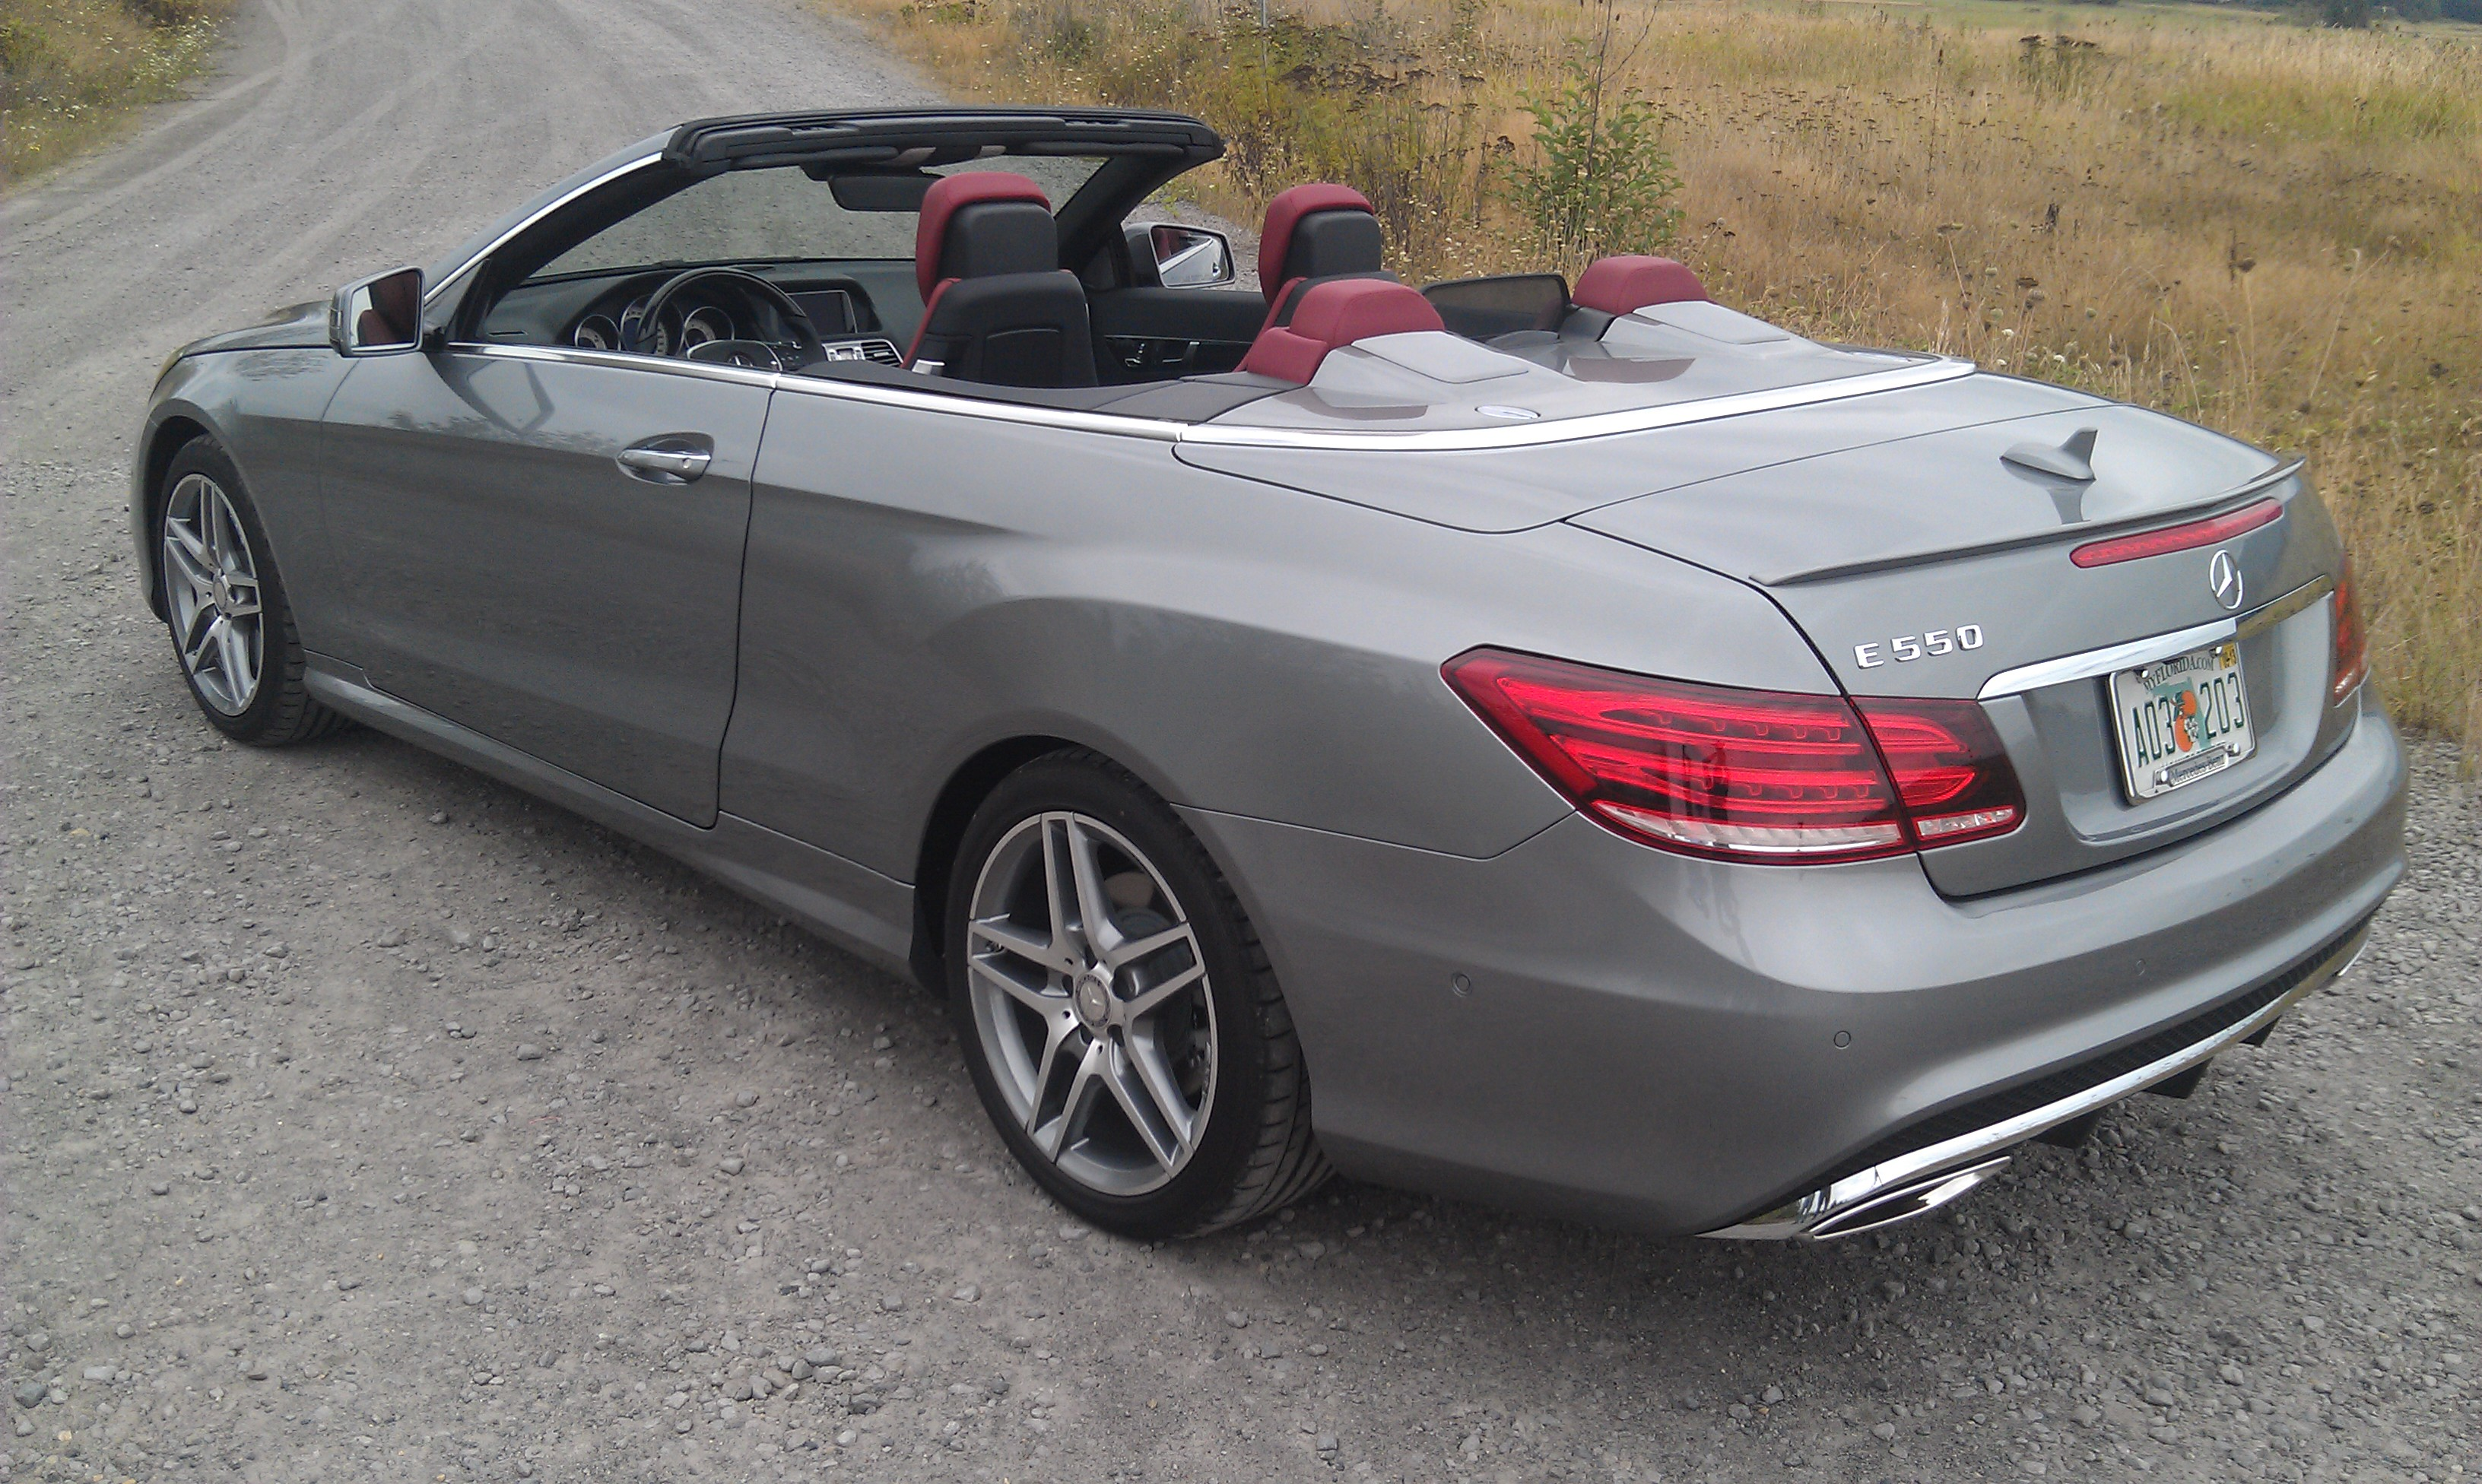 essai routier mercedes benz e550 cabriolet 2014. Black Bedroom Furniture Sets. Home Design Ideas